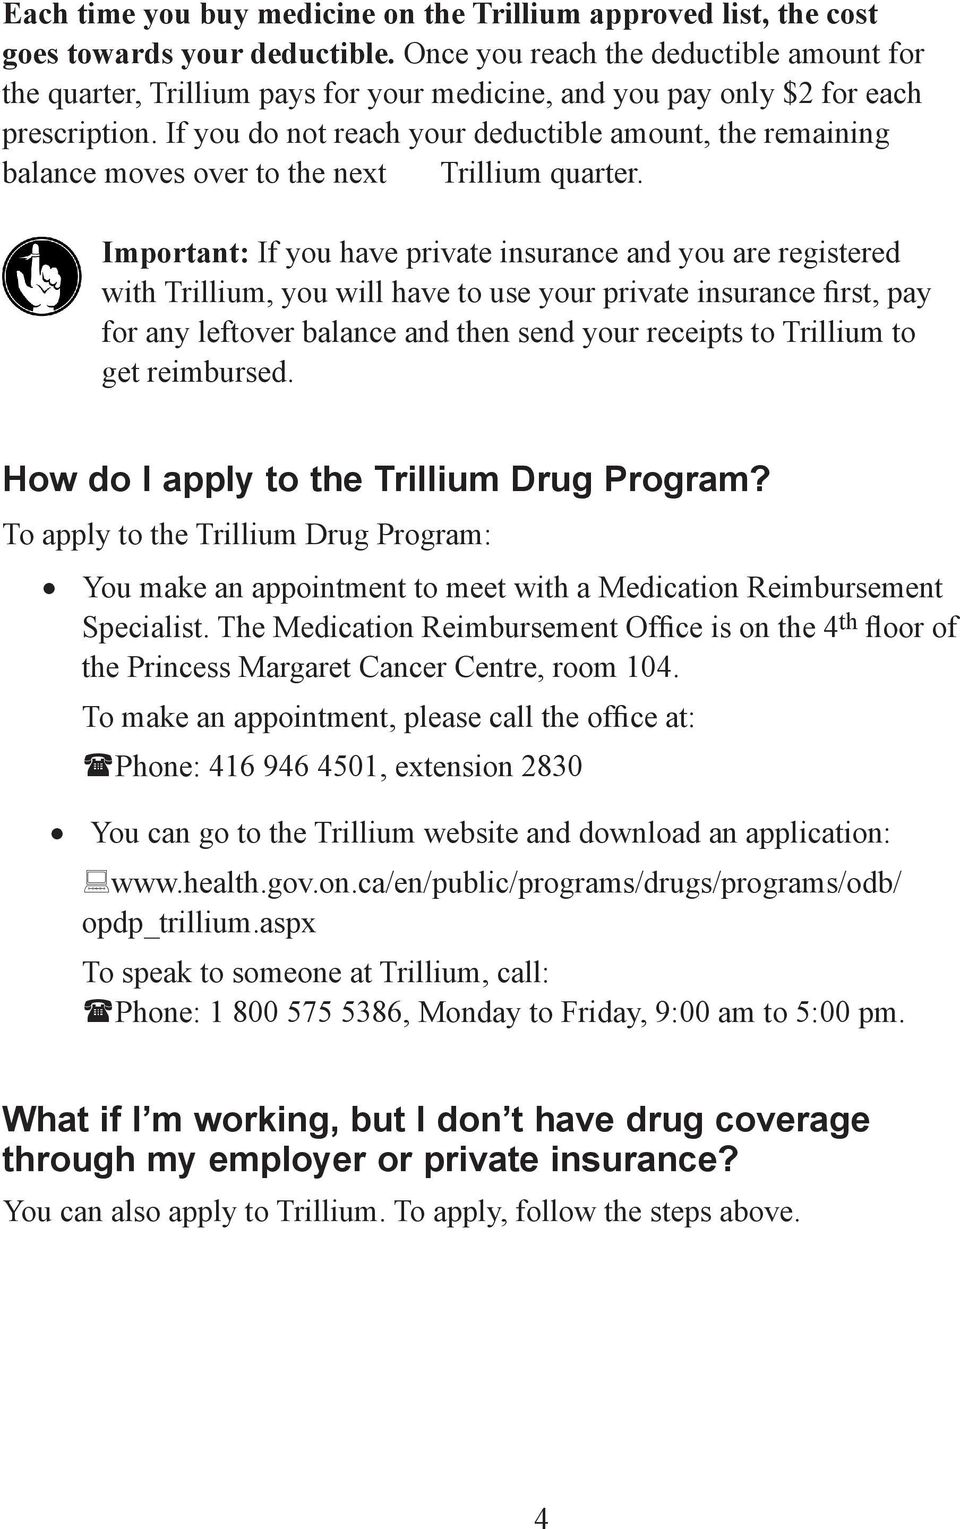 If you do not reach your deductible amount, the remaining balance moves over to the next Trillium quarter.